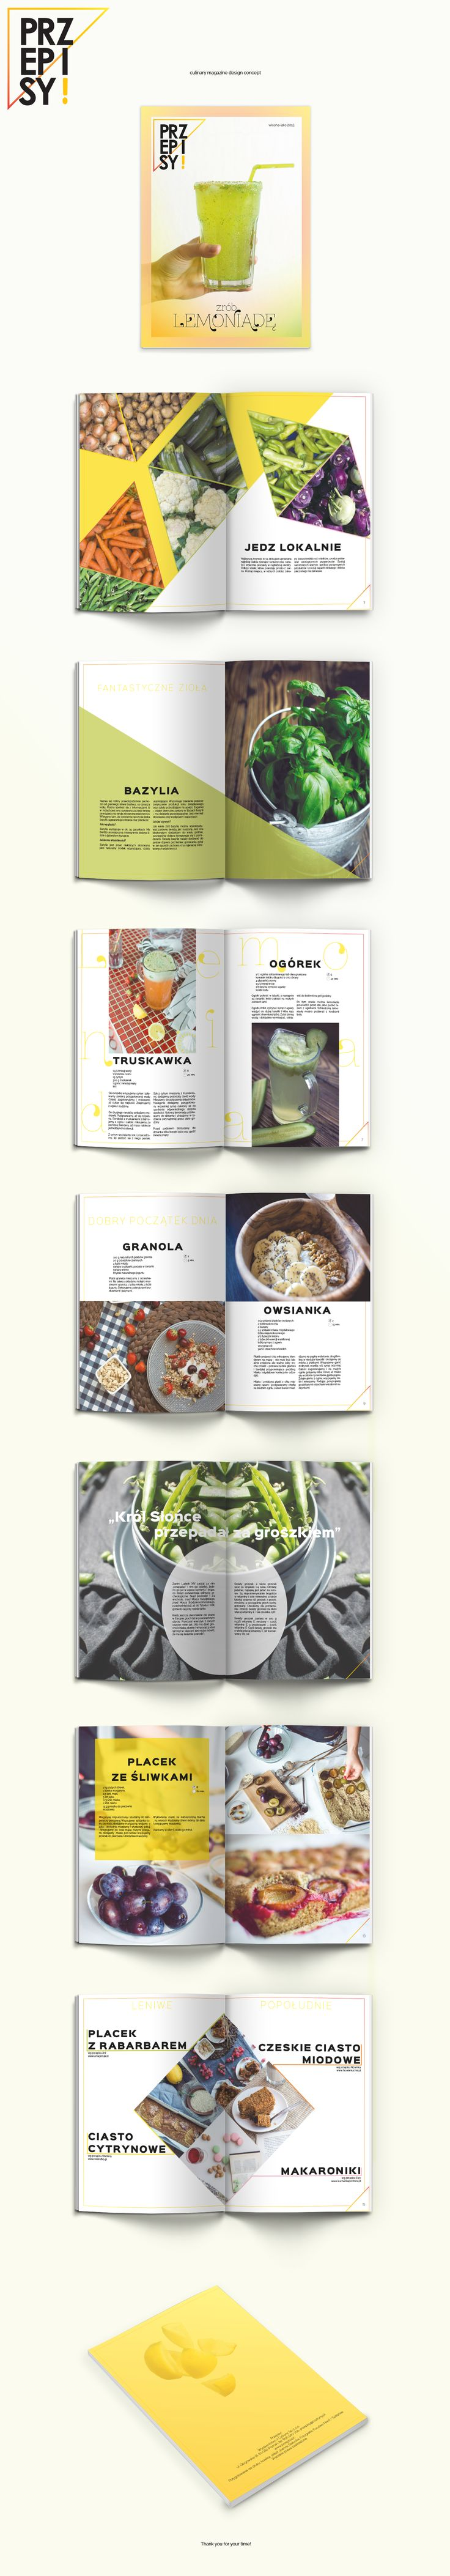 Culinary magazine design concept on Behance